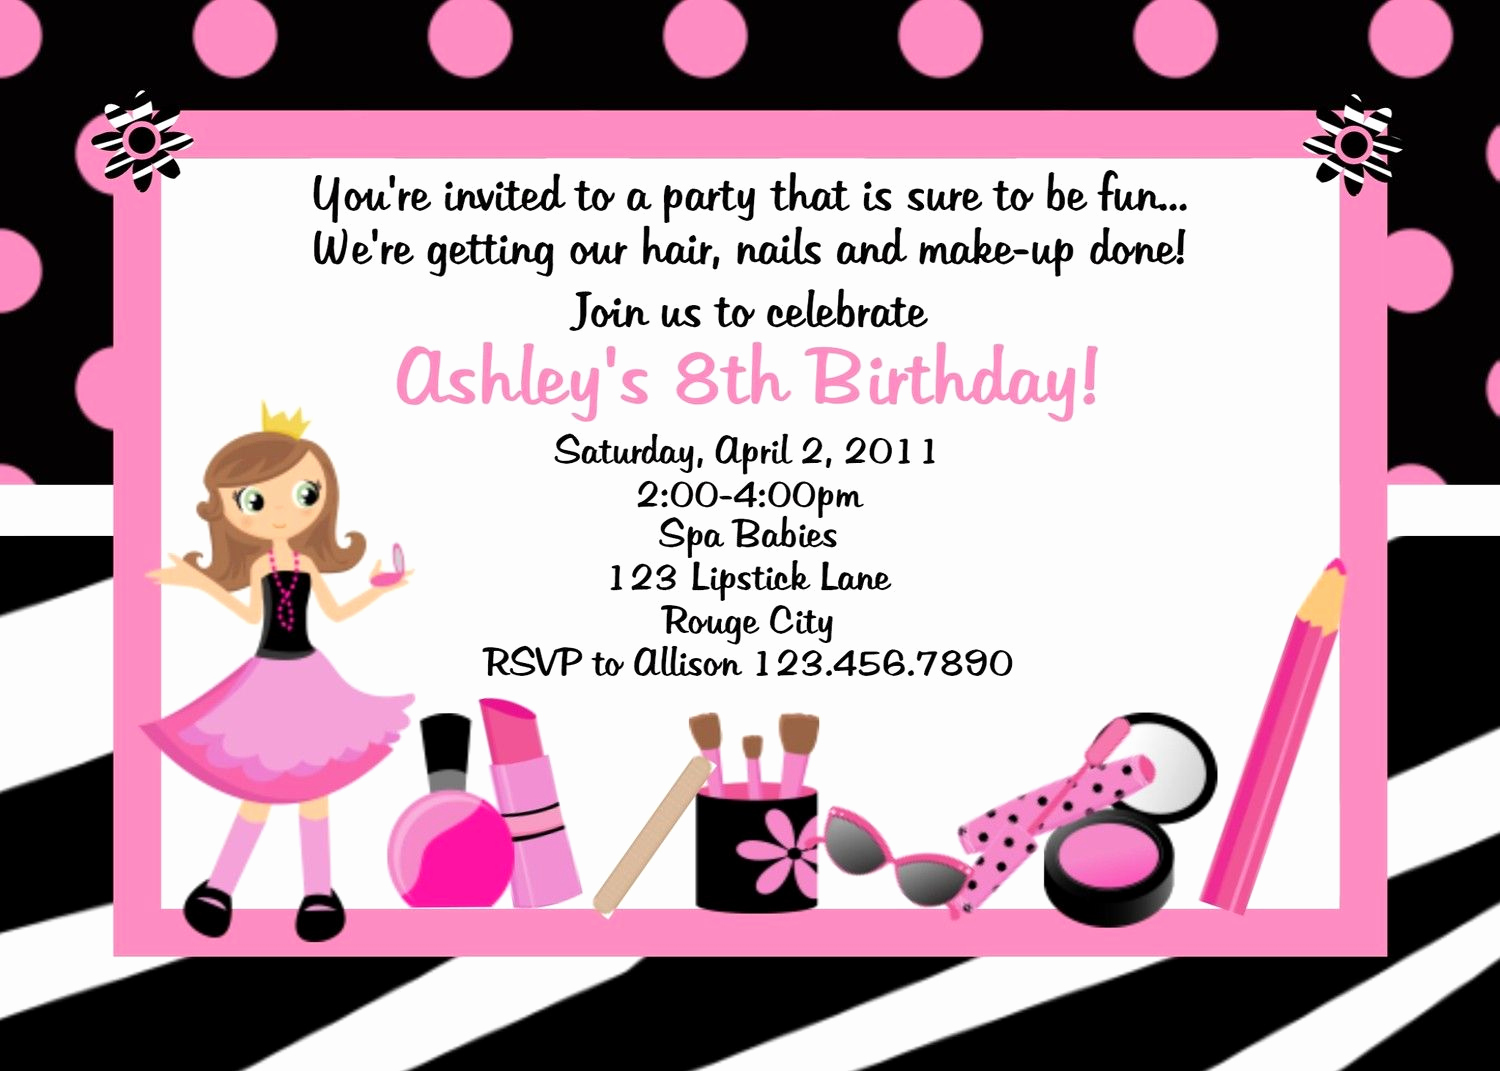 6th Birthday Invitation Wording Beautiful Lexi S 6th Bday Party Diva Spa Birthday Invitation Diva